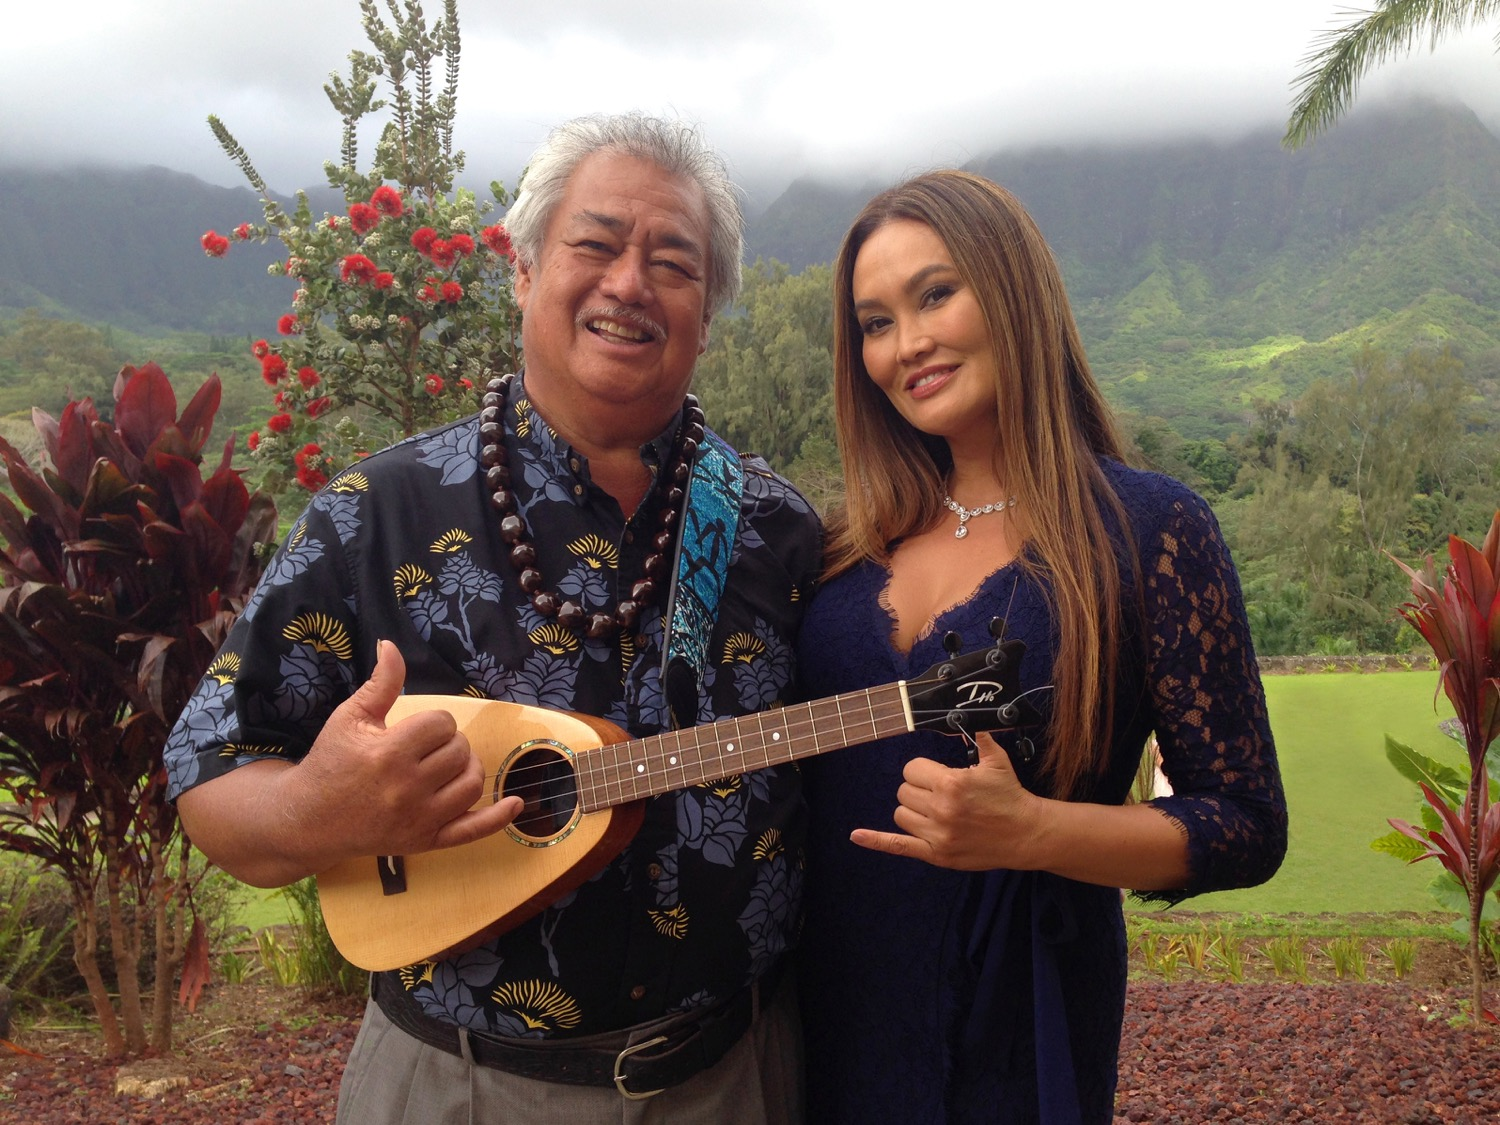 George Kahumoku, Jr. & Tia Carrere - at home with the Tiny Tenor in Hawaii.